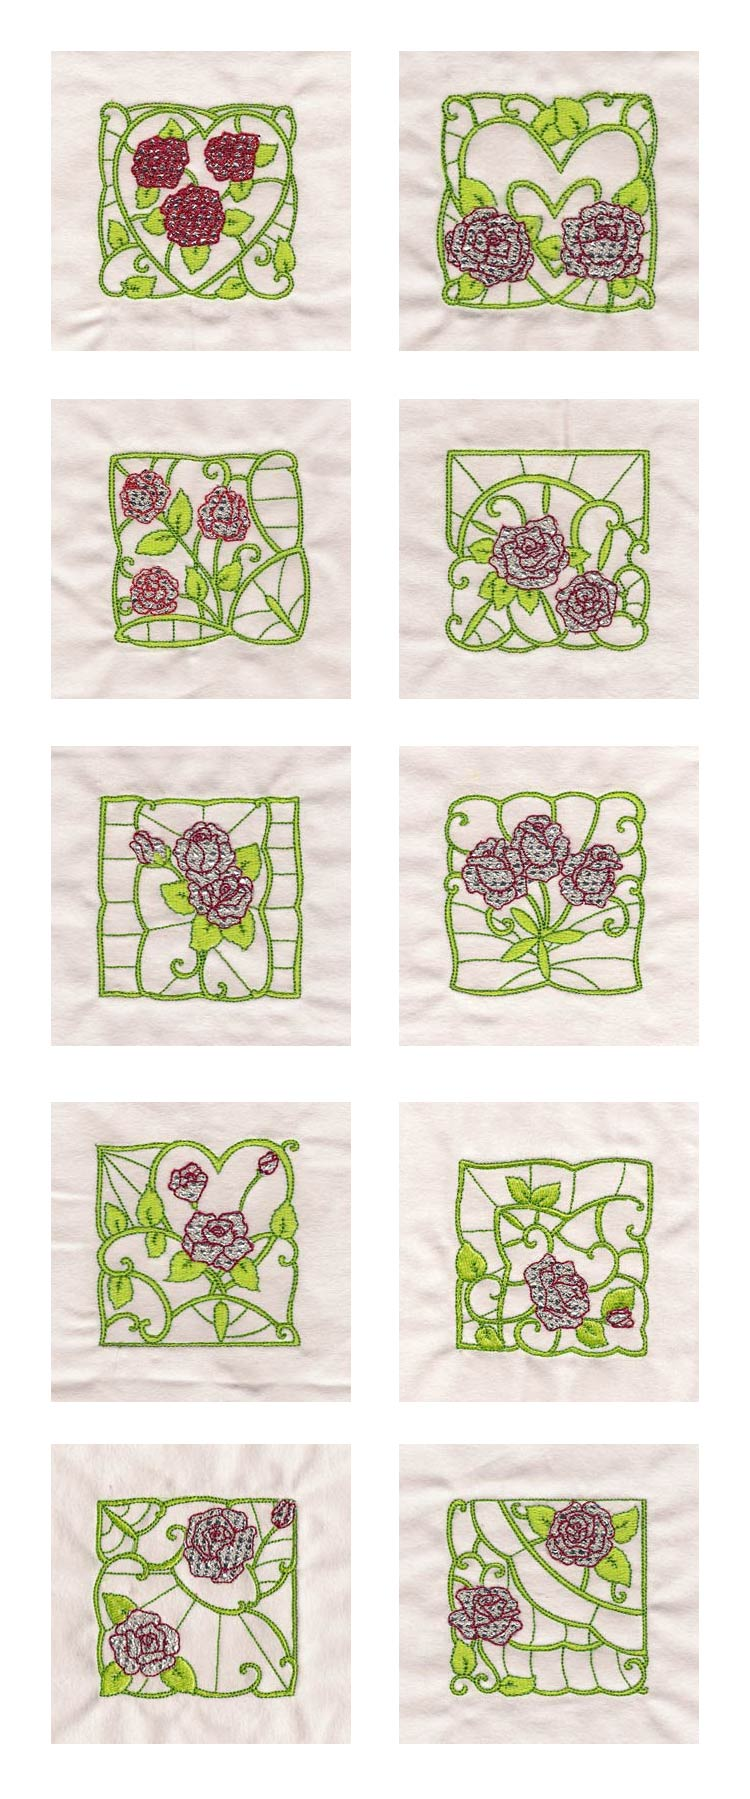 Mylar Rose Blocks Embroidery Machine Design Details